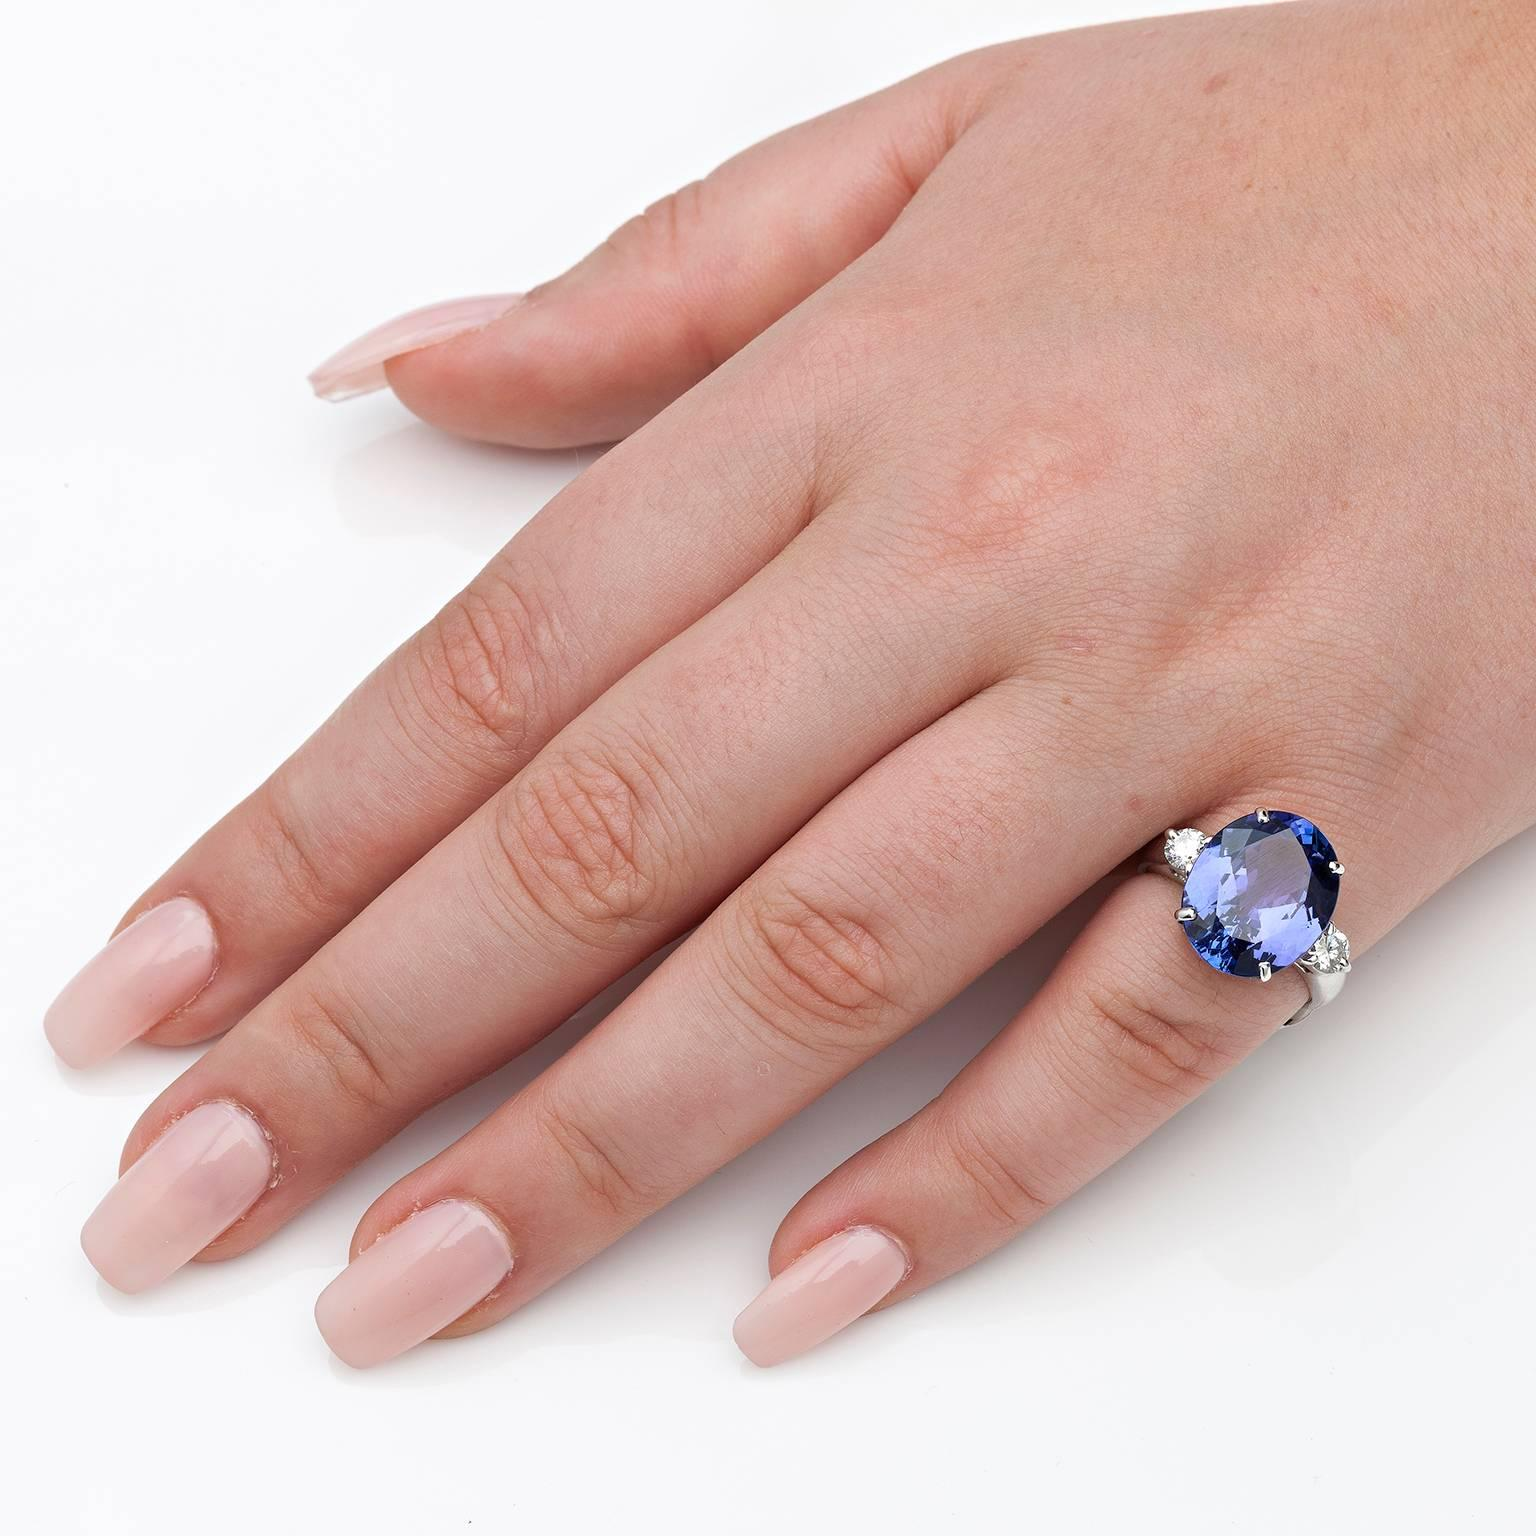 9 Carat Tanzanite and Diamond Ring For Sale at 1stdibs